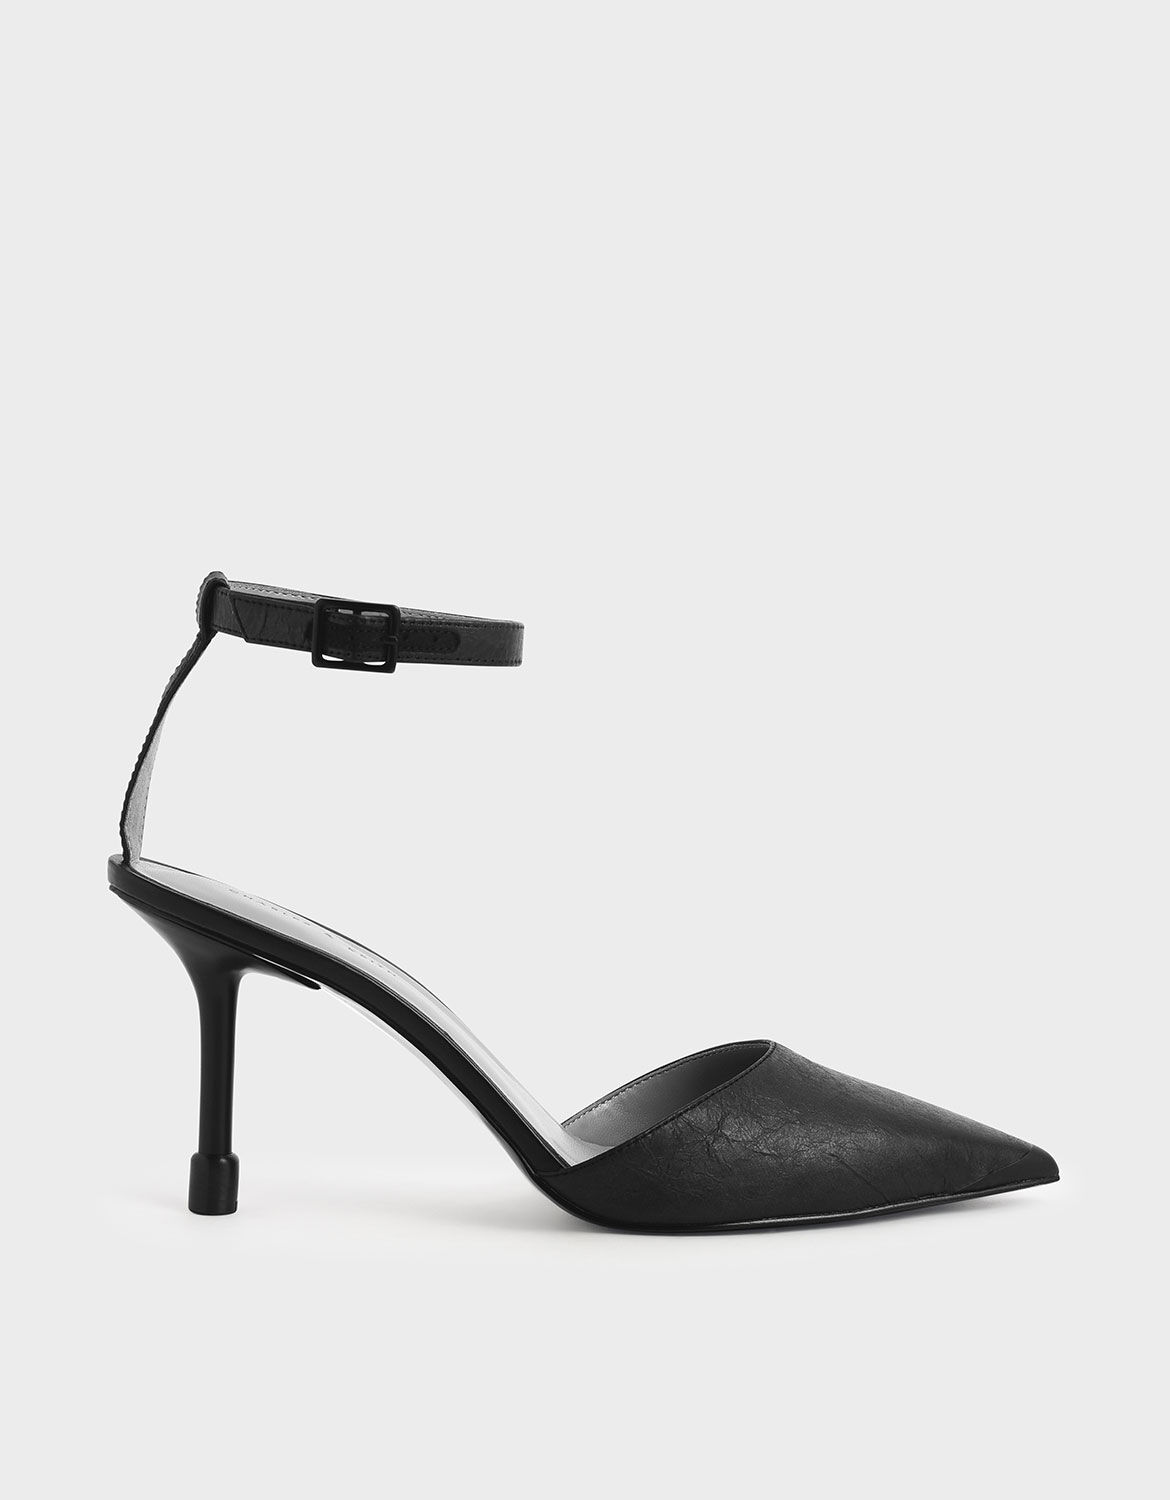 Black Ankle Strap Pointed Toe Pumps